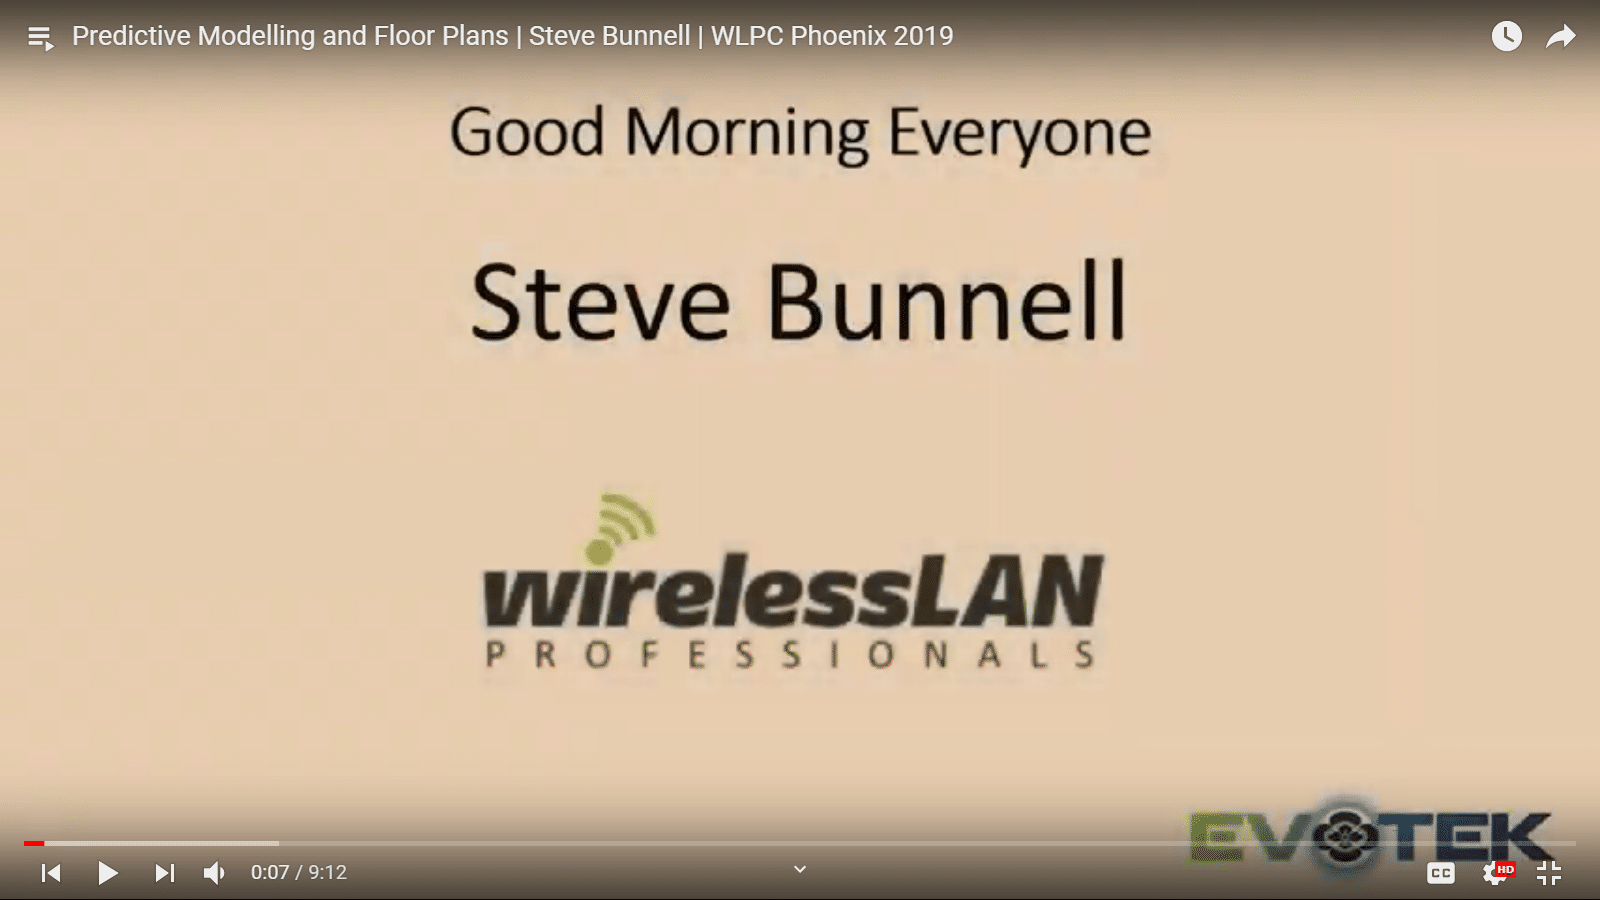 Predictive Modelling and Floor Plans | Steve Bunnell | WLPC Phoenix 2019